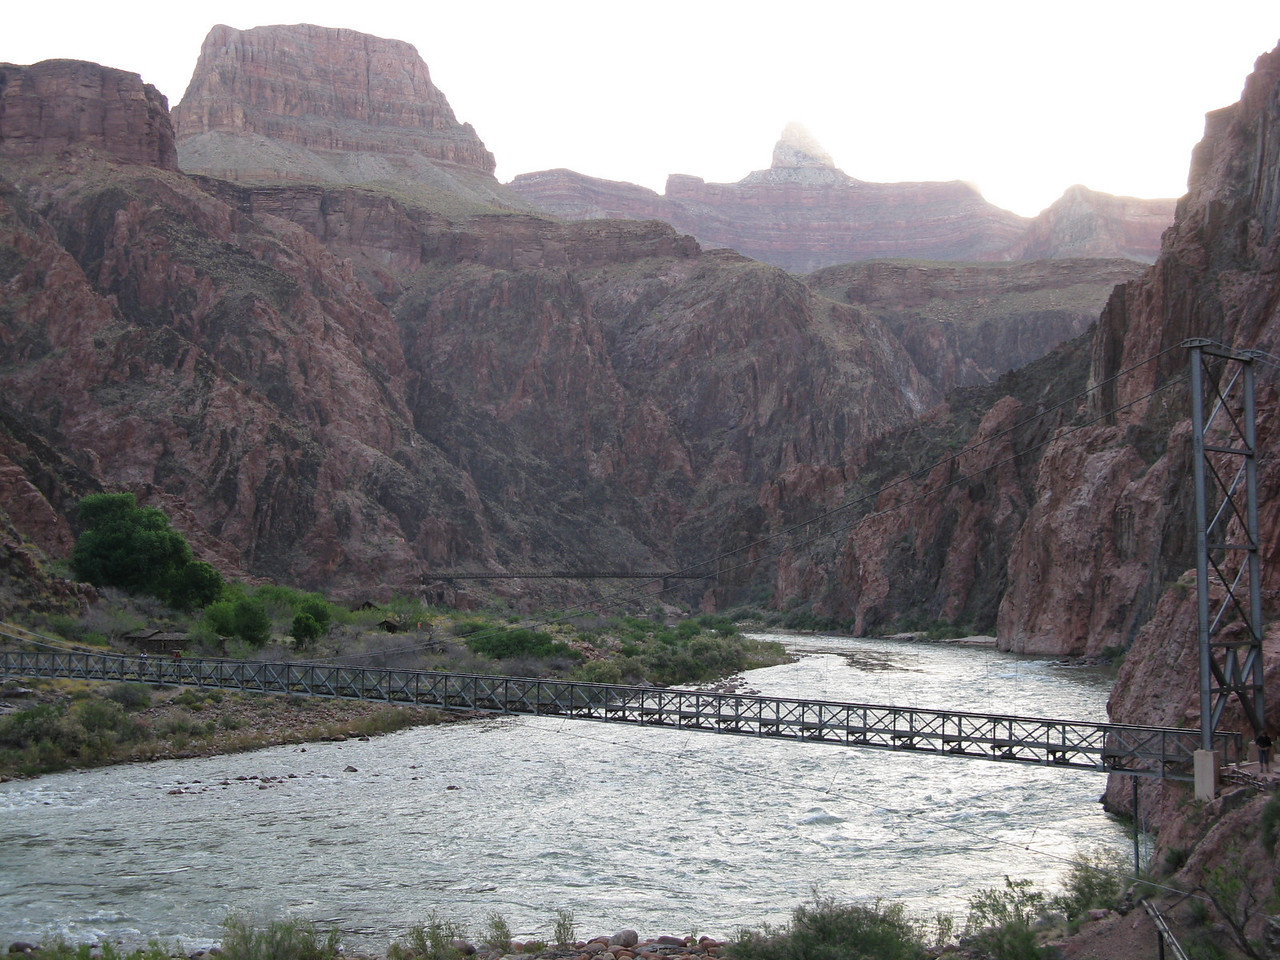 Looking upstream from just beyond the Silver Bridge with the Black Bridge in the distance.  In this early morning picture, there is direct sunlight at the top of the canyon, but it will not reach the bottom of the canyon for some time.